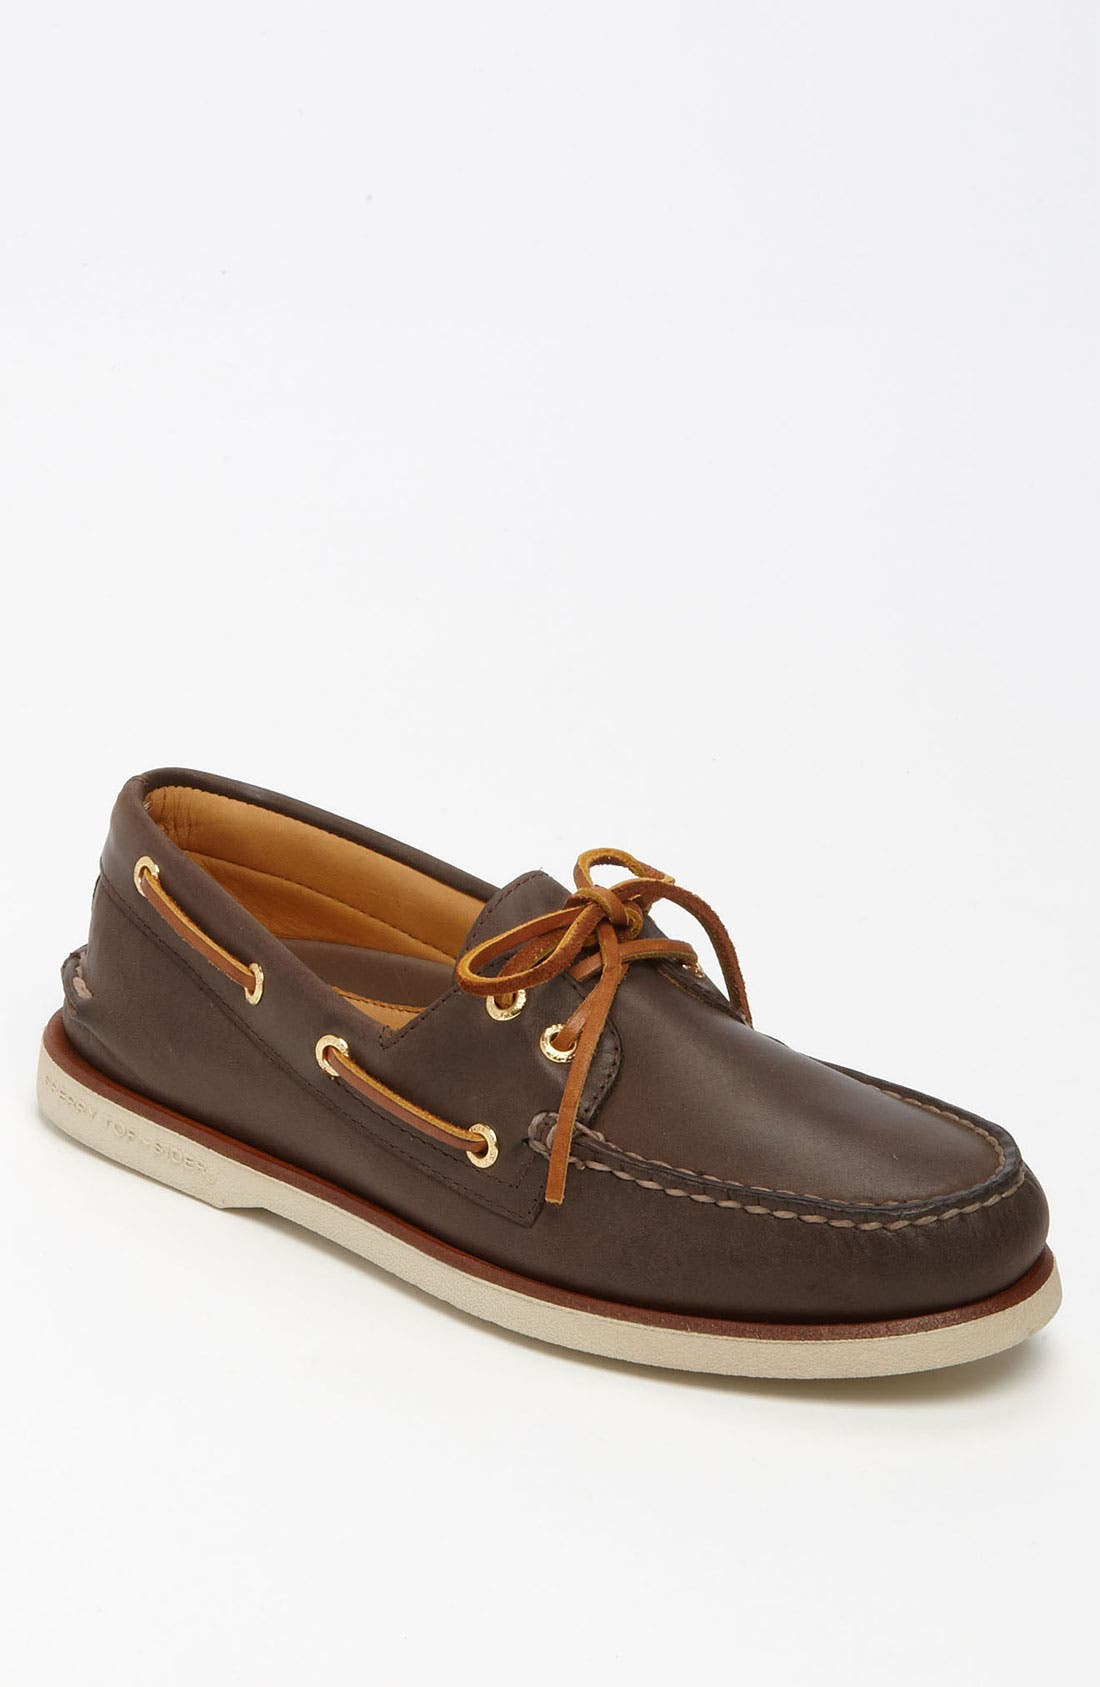 'Gold Cup - Authentic Original' Boat Shoe,                         Main,                         color, DARK BROWN LEATHER